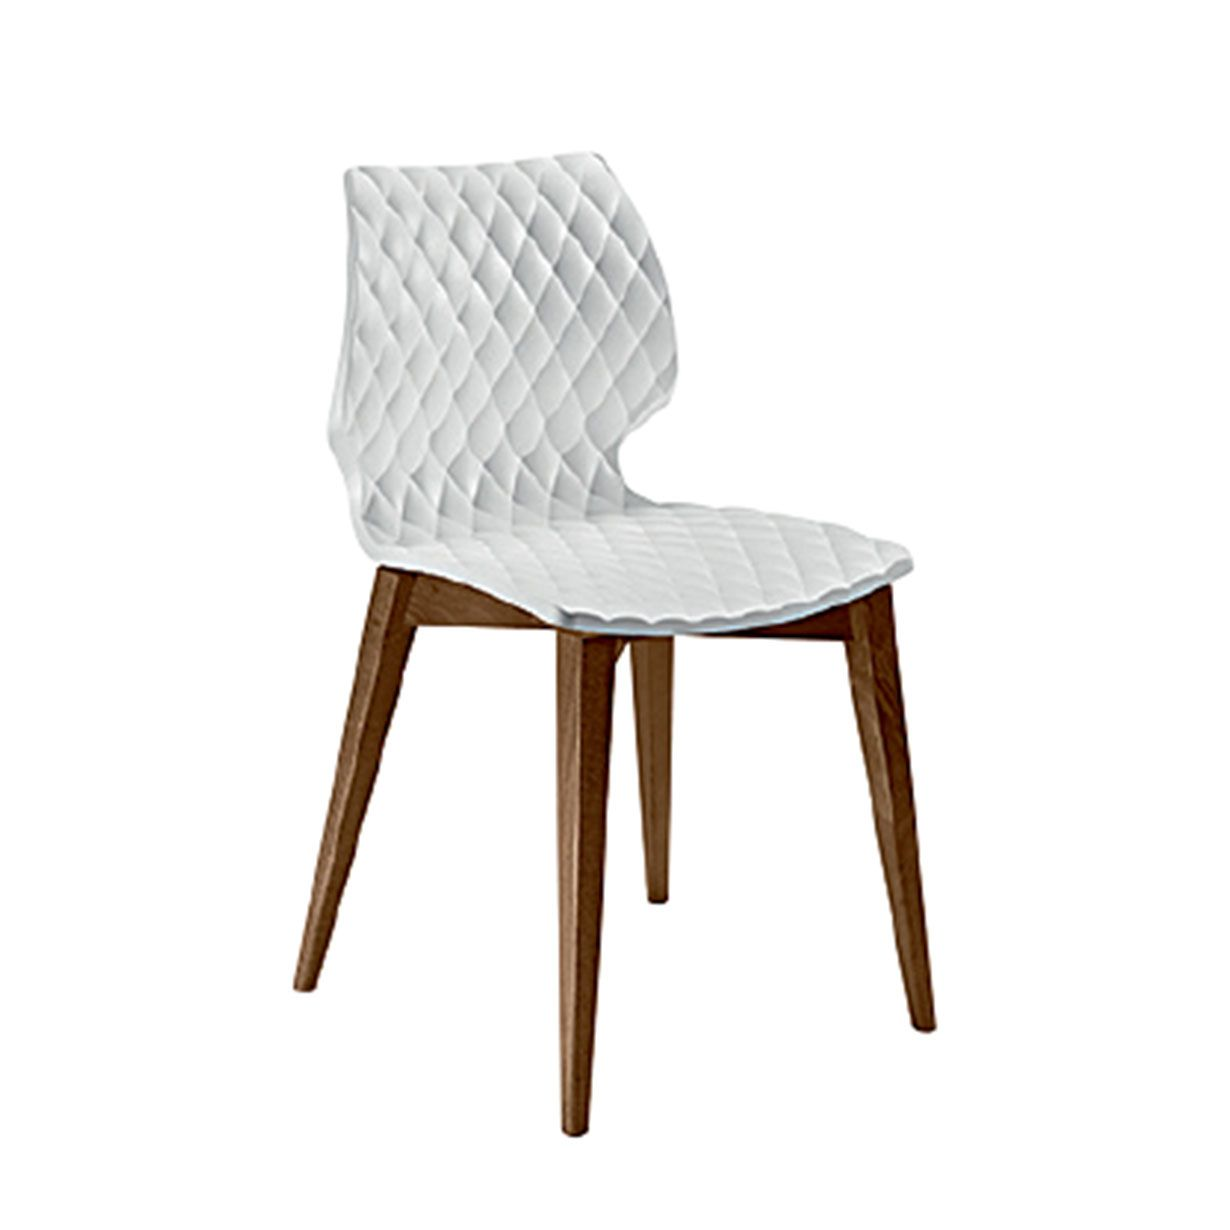 Articolo: 562Chair without arms, legs made of natural or dyed beechwood, seat made of polypropylene.